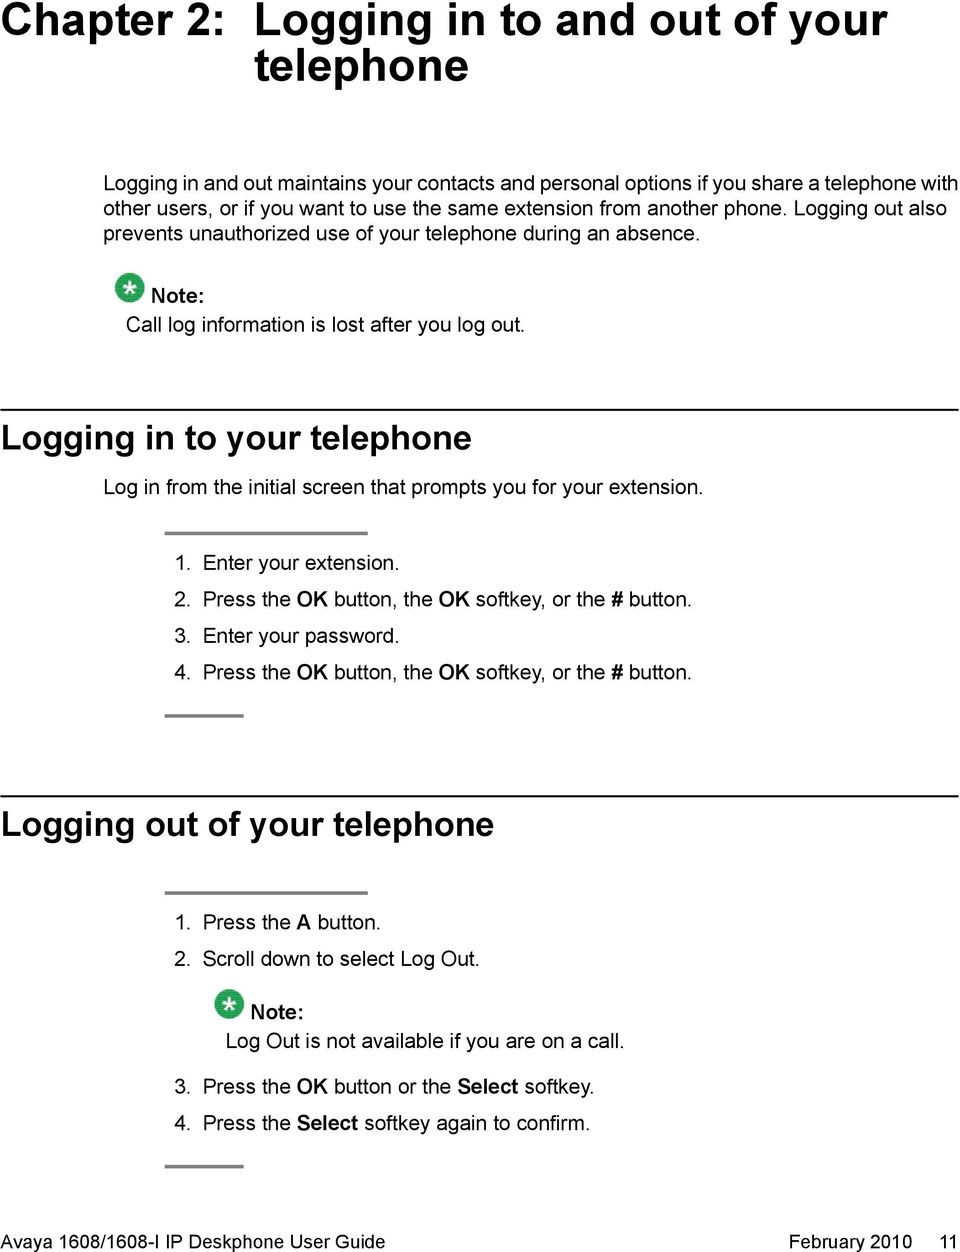 Logging in to your telephone Log in from the initial screen that prompts you for your extension. 1. Enter your extension. 2. Press the OK button, the OK softkey, or the # button. 3.